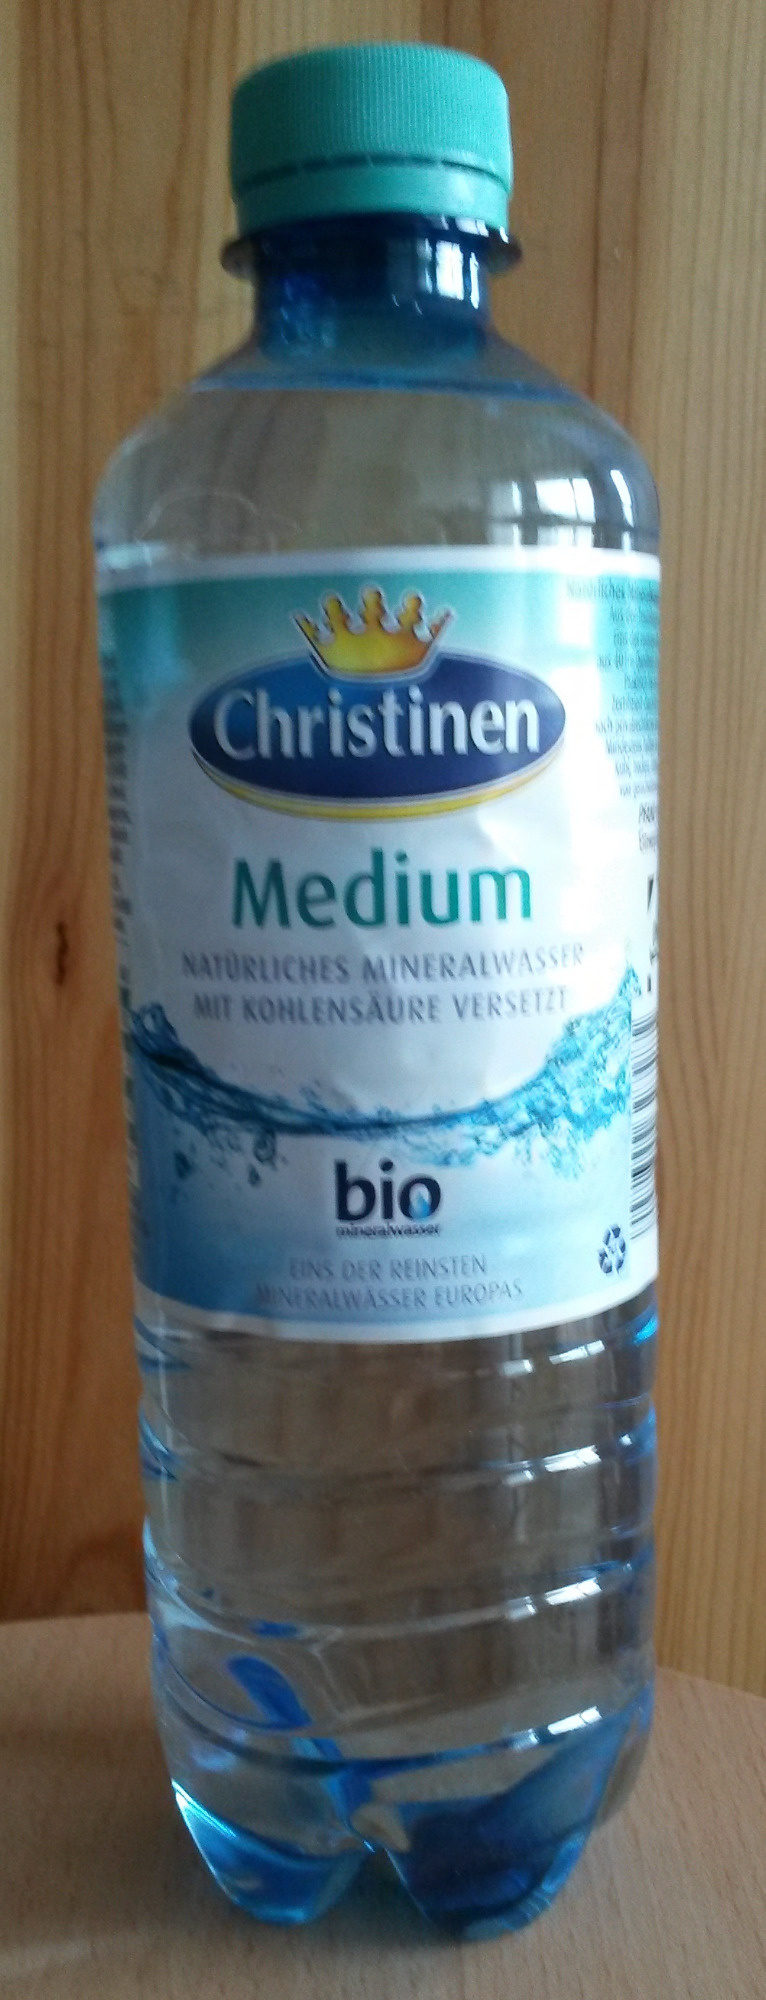 Christinen Medium - Produit - de